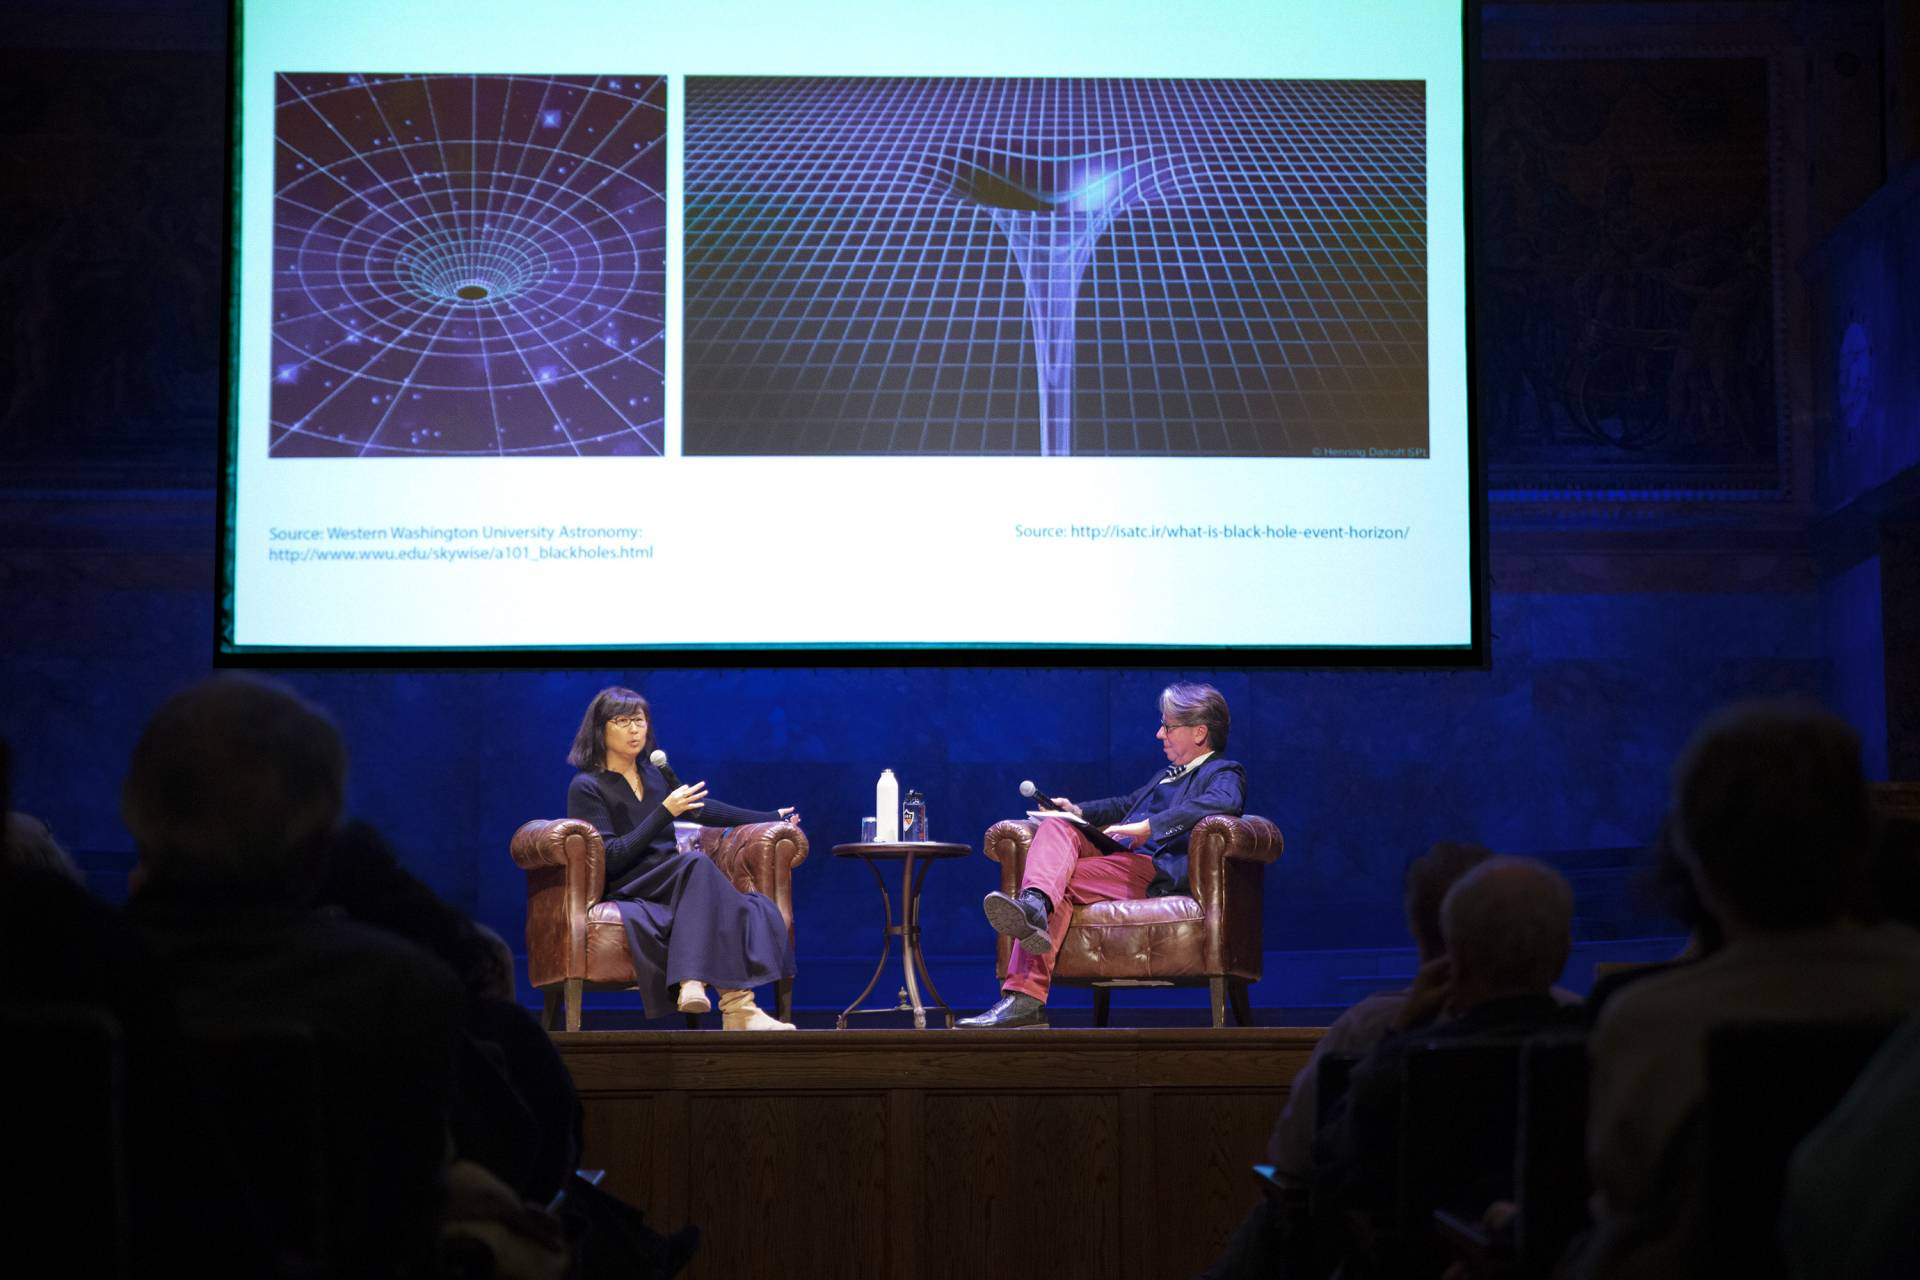 Maya Lin speaks with James Steward on stage about her installation